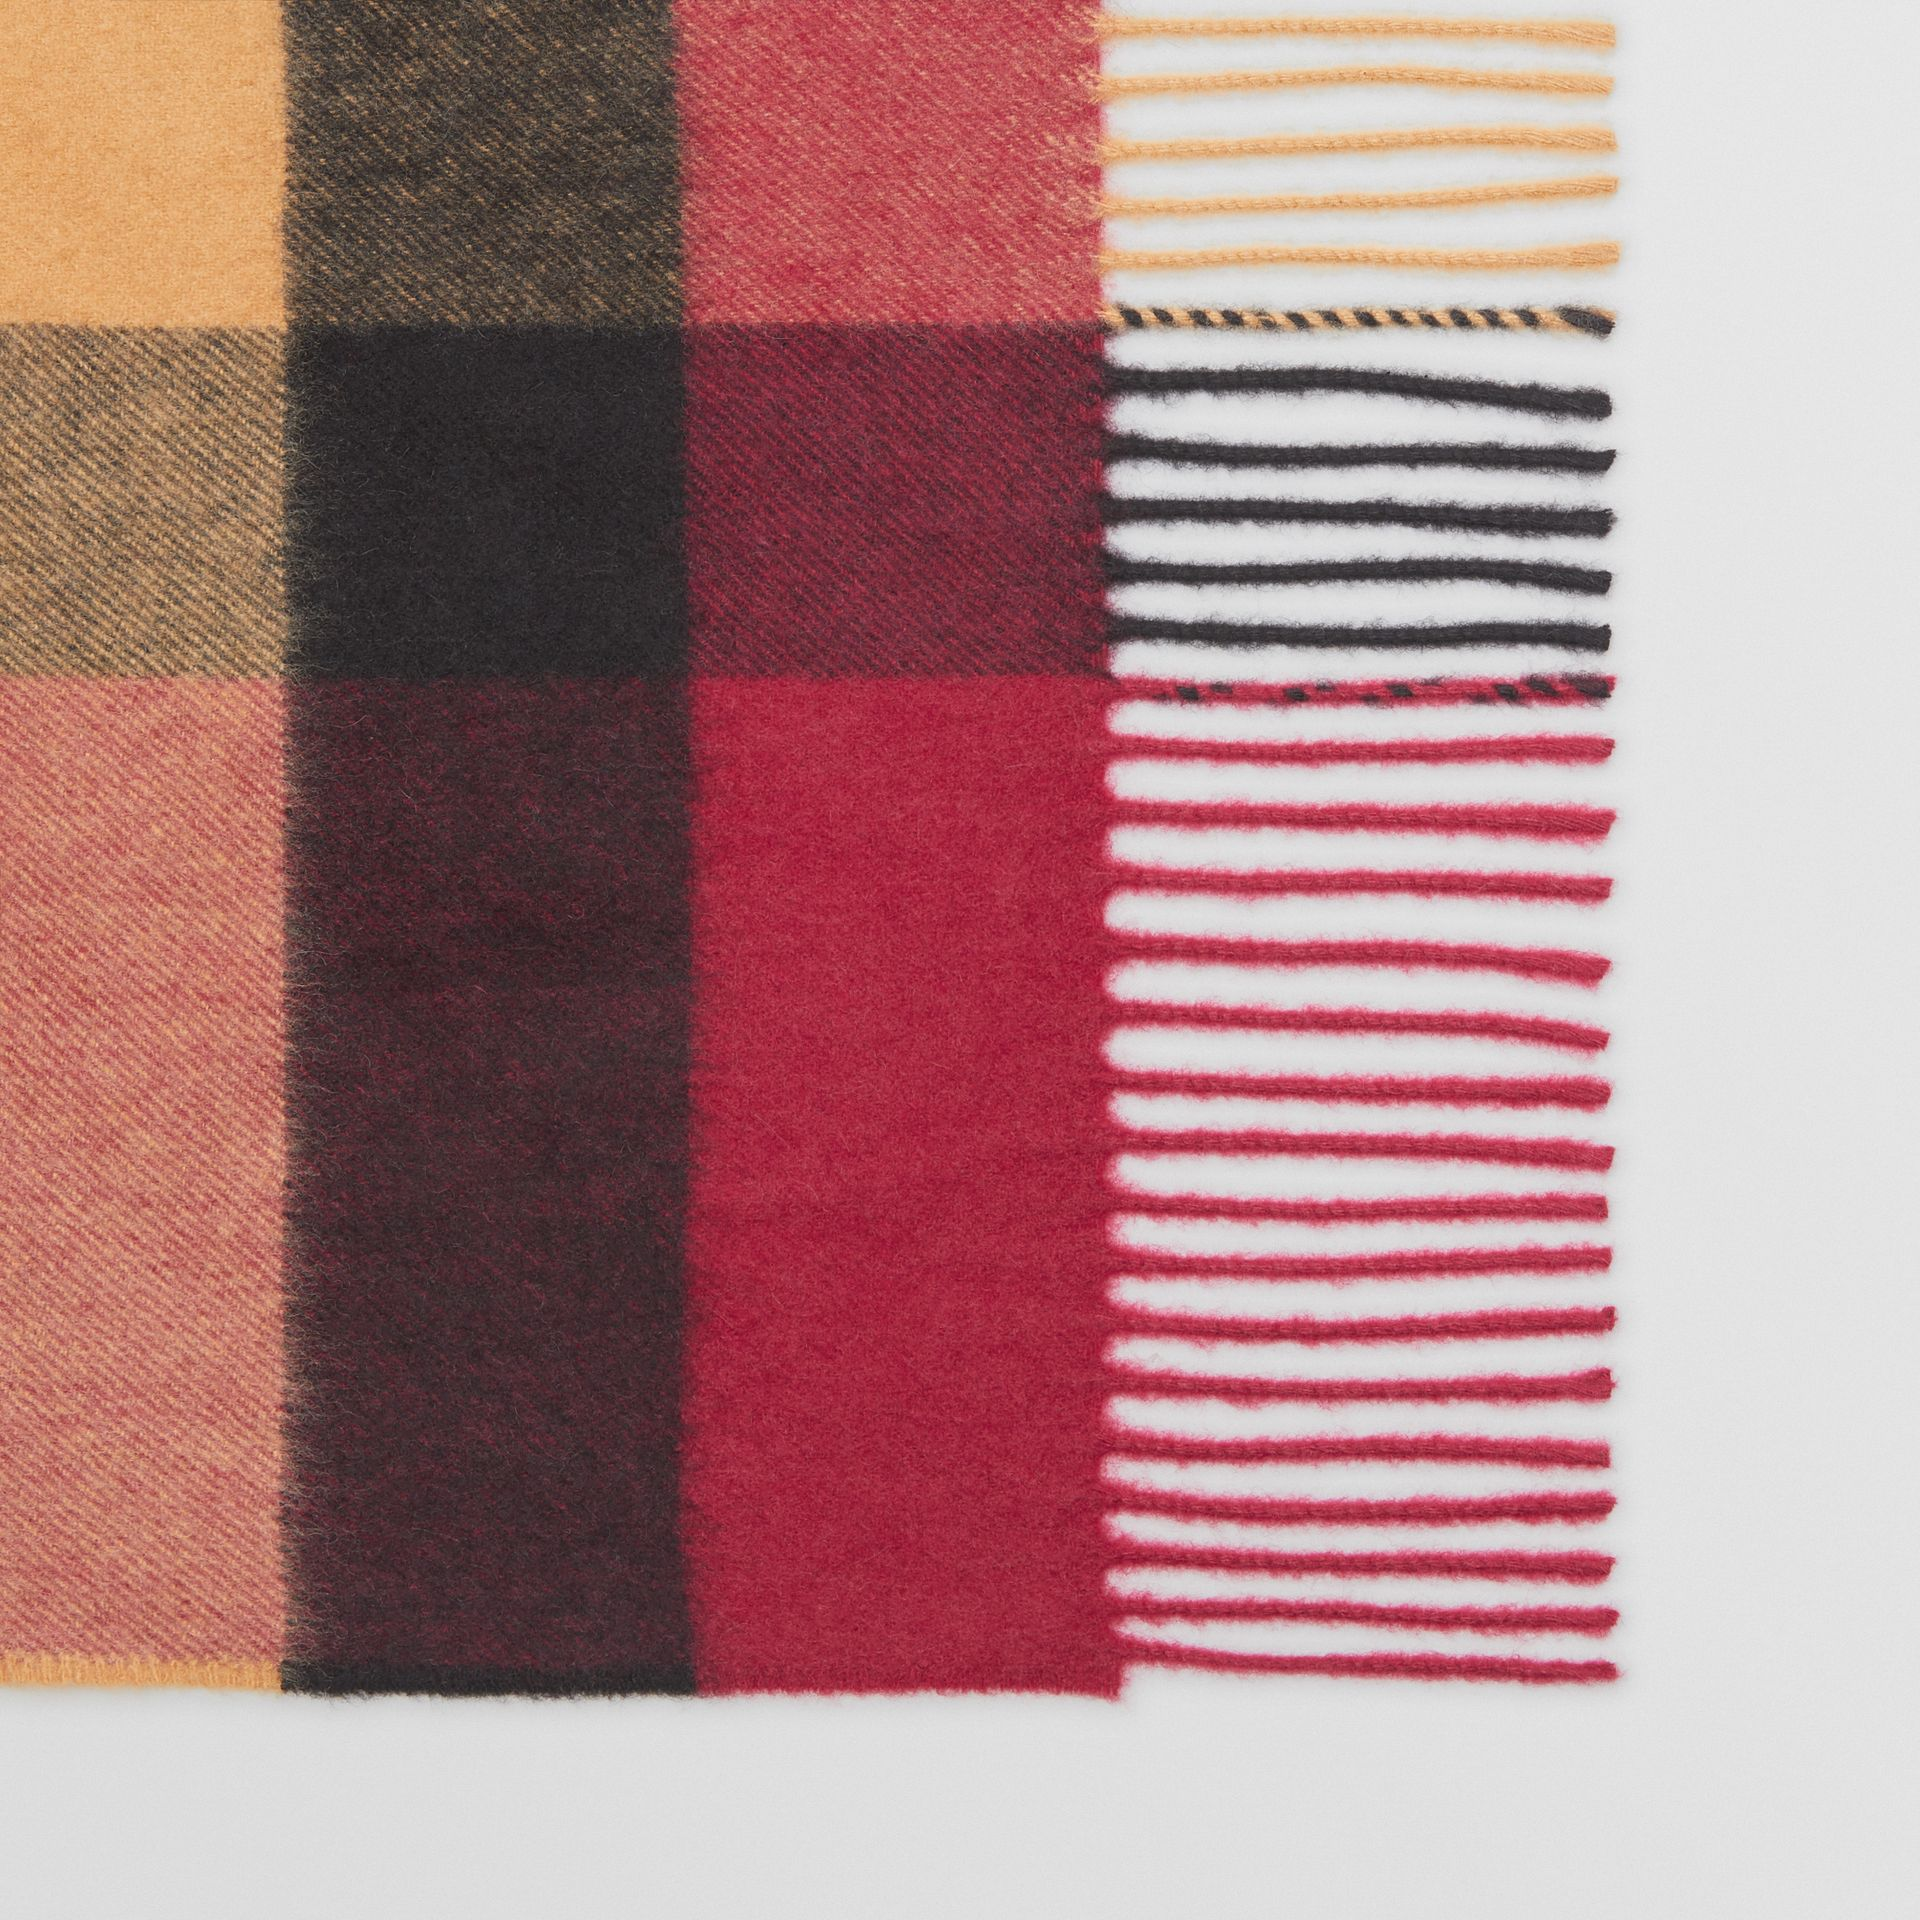 The Burberry Bandana in Check Cashmere in Damson Pink | Burberry - gallery image 1